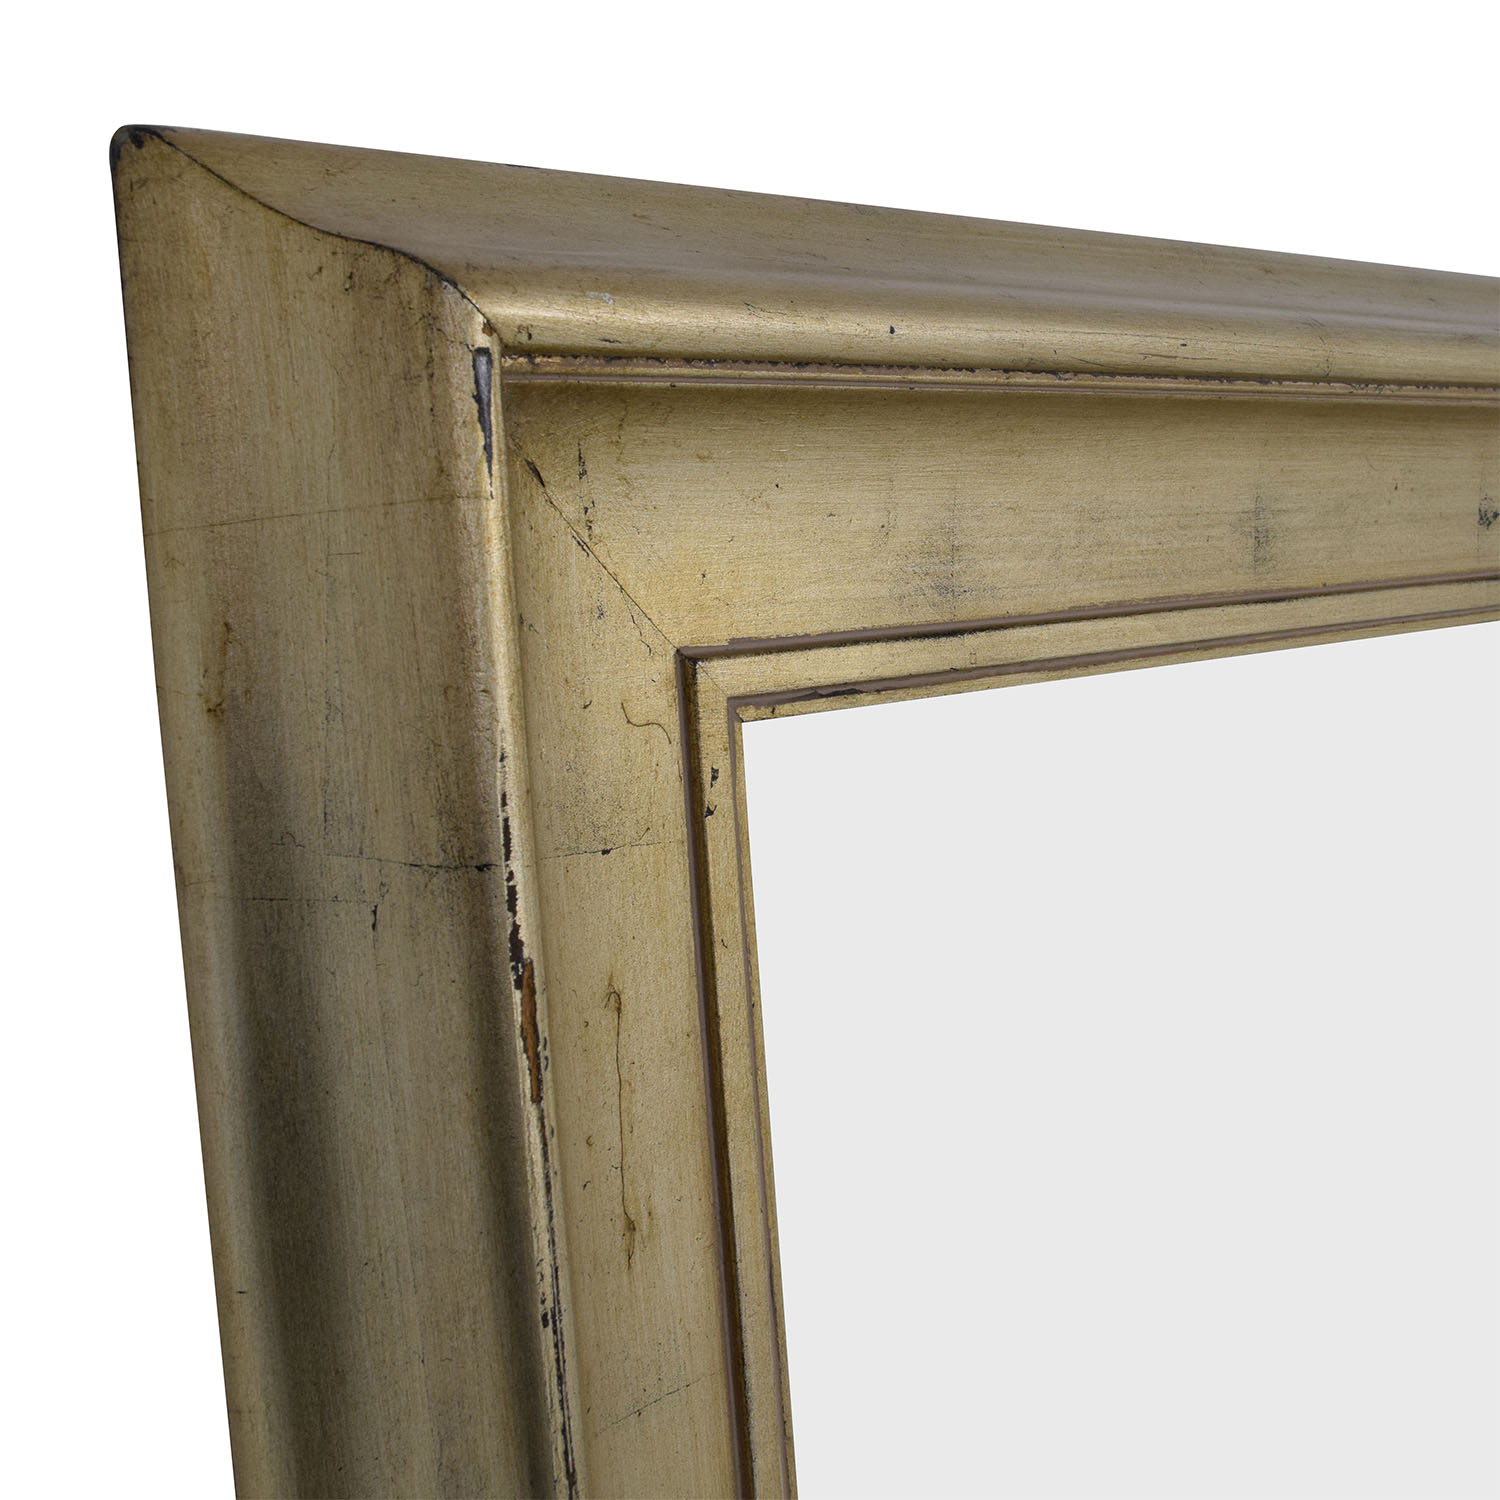 Standing Gold Framed Mirror used